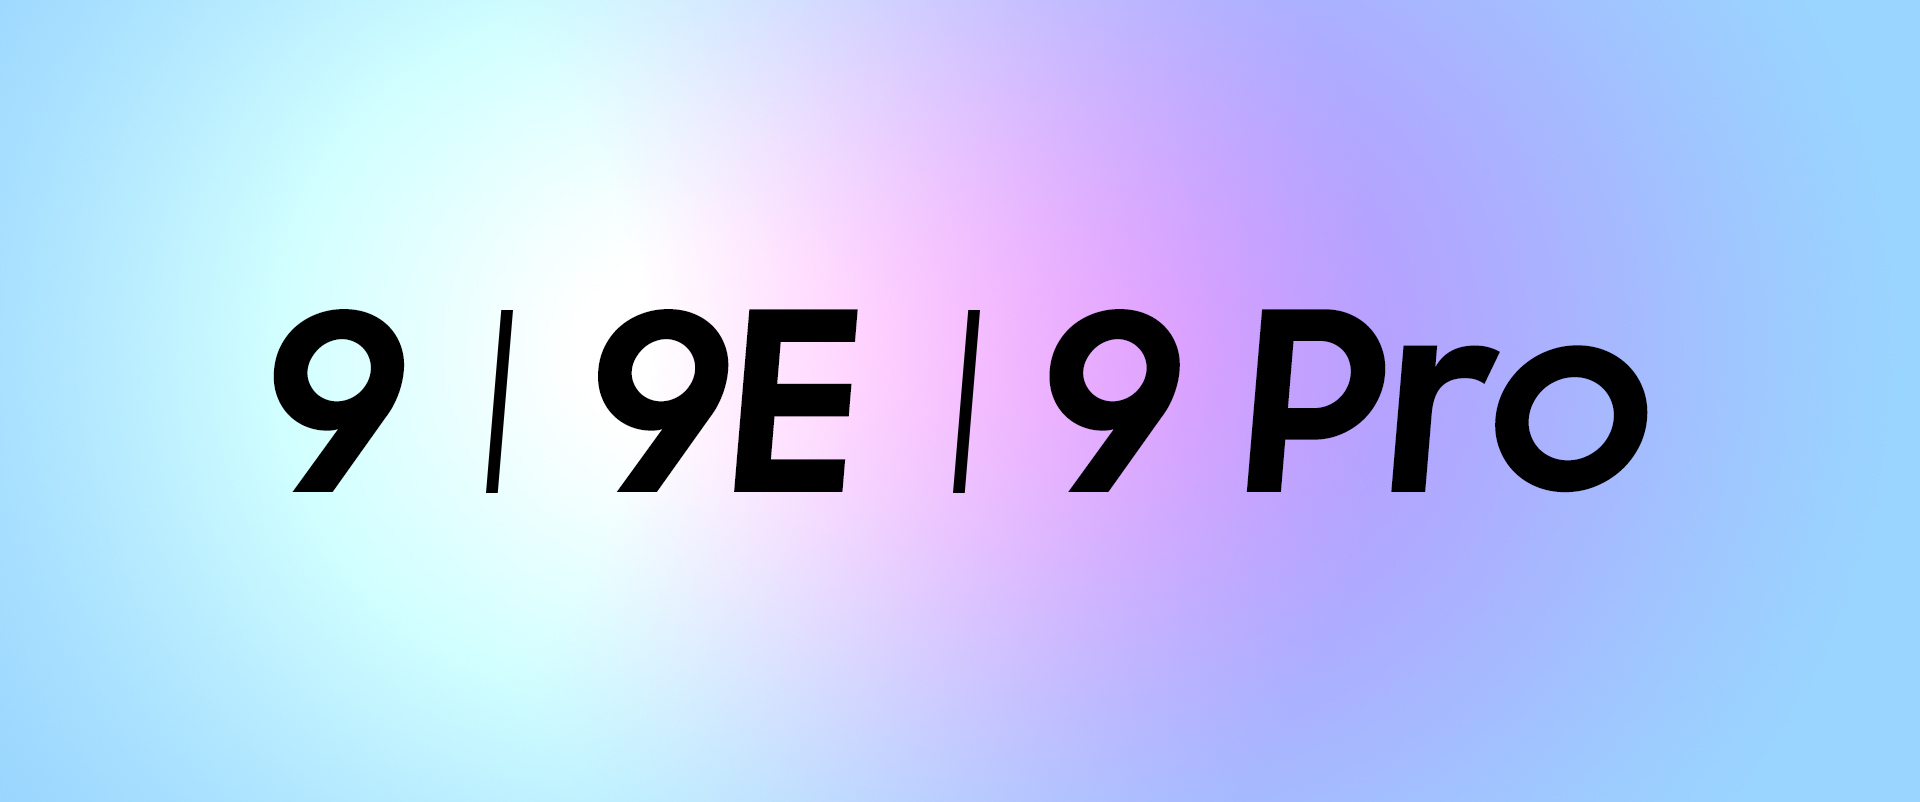 OnePlus 9E will launch along with OnePlus 9 and OnePlus 9 Pro models